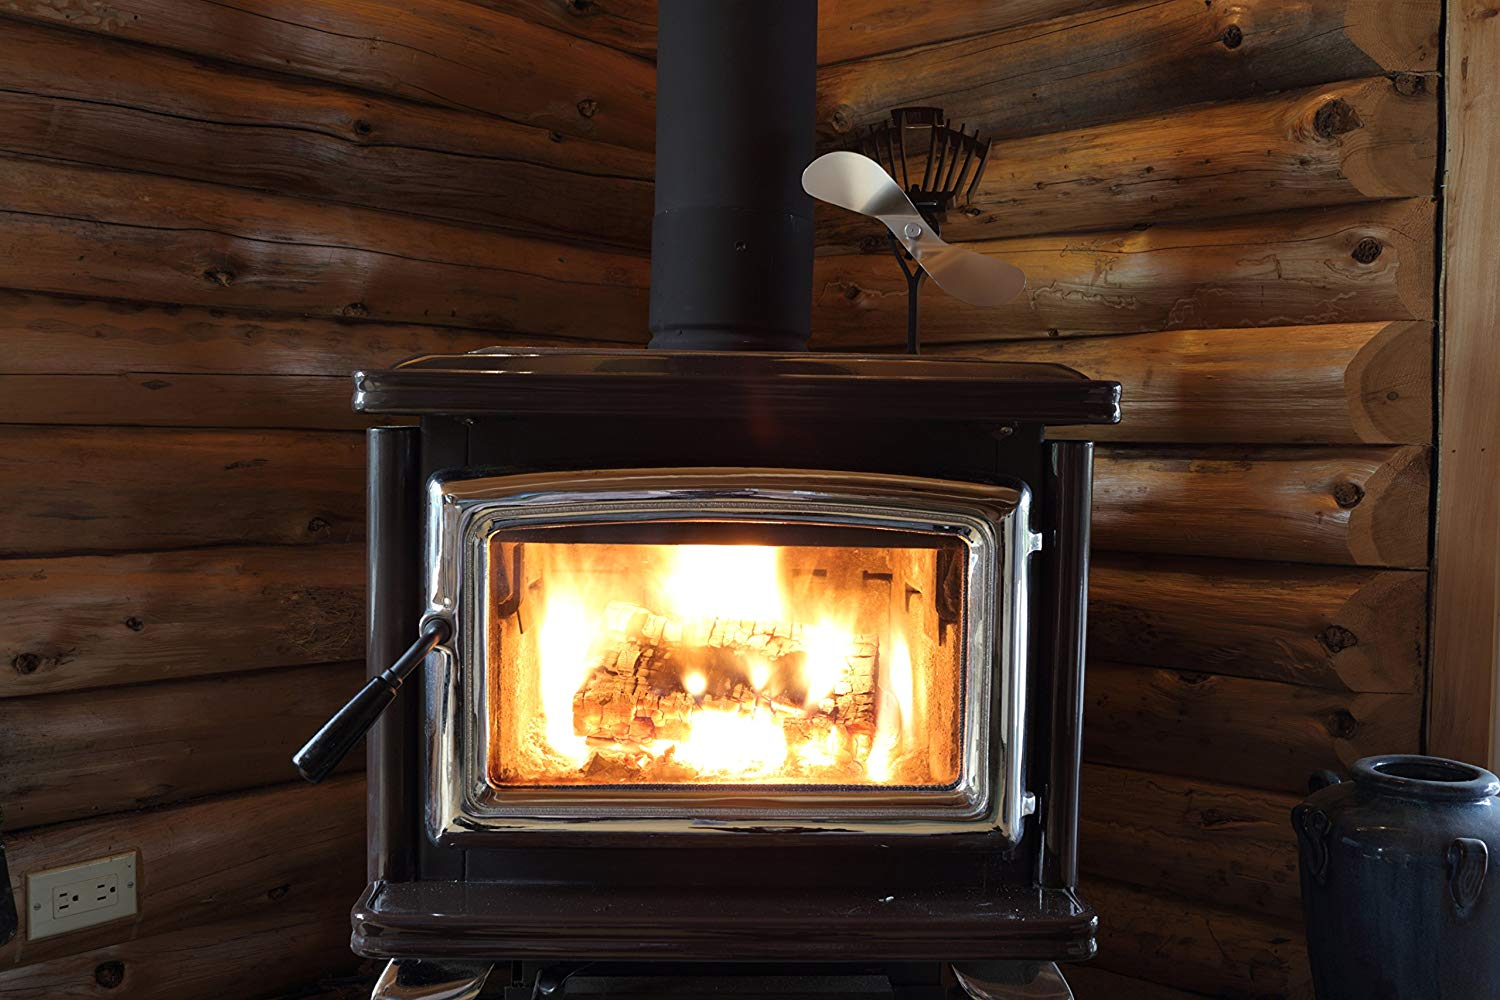 Best Wood Stove Fan For The Money Guide For Efficient